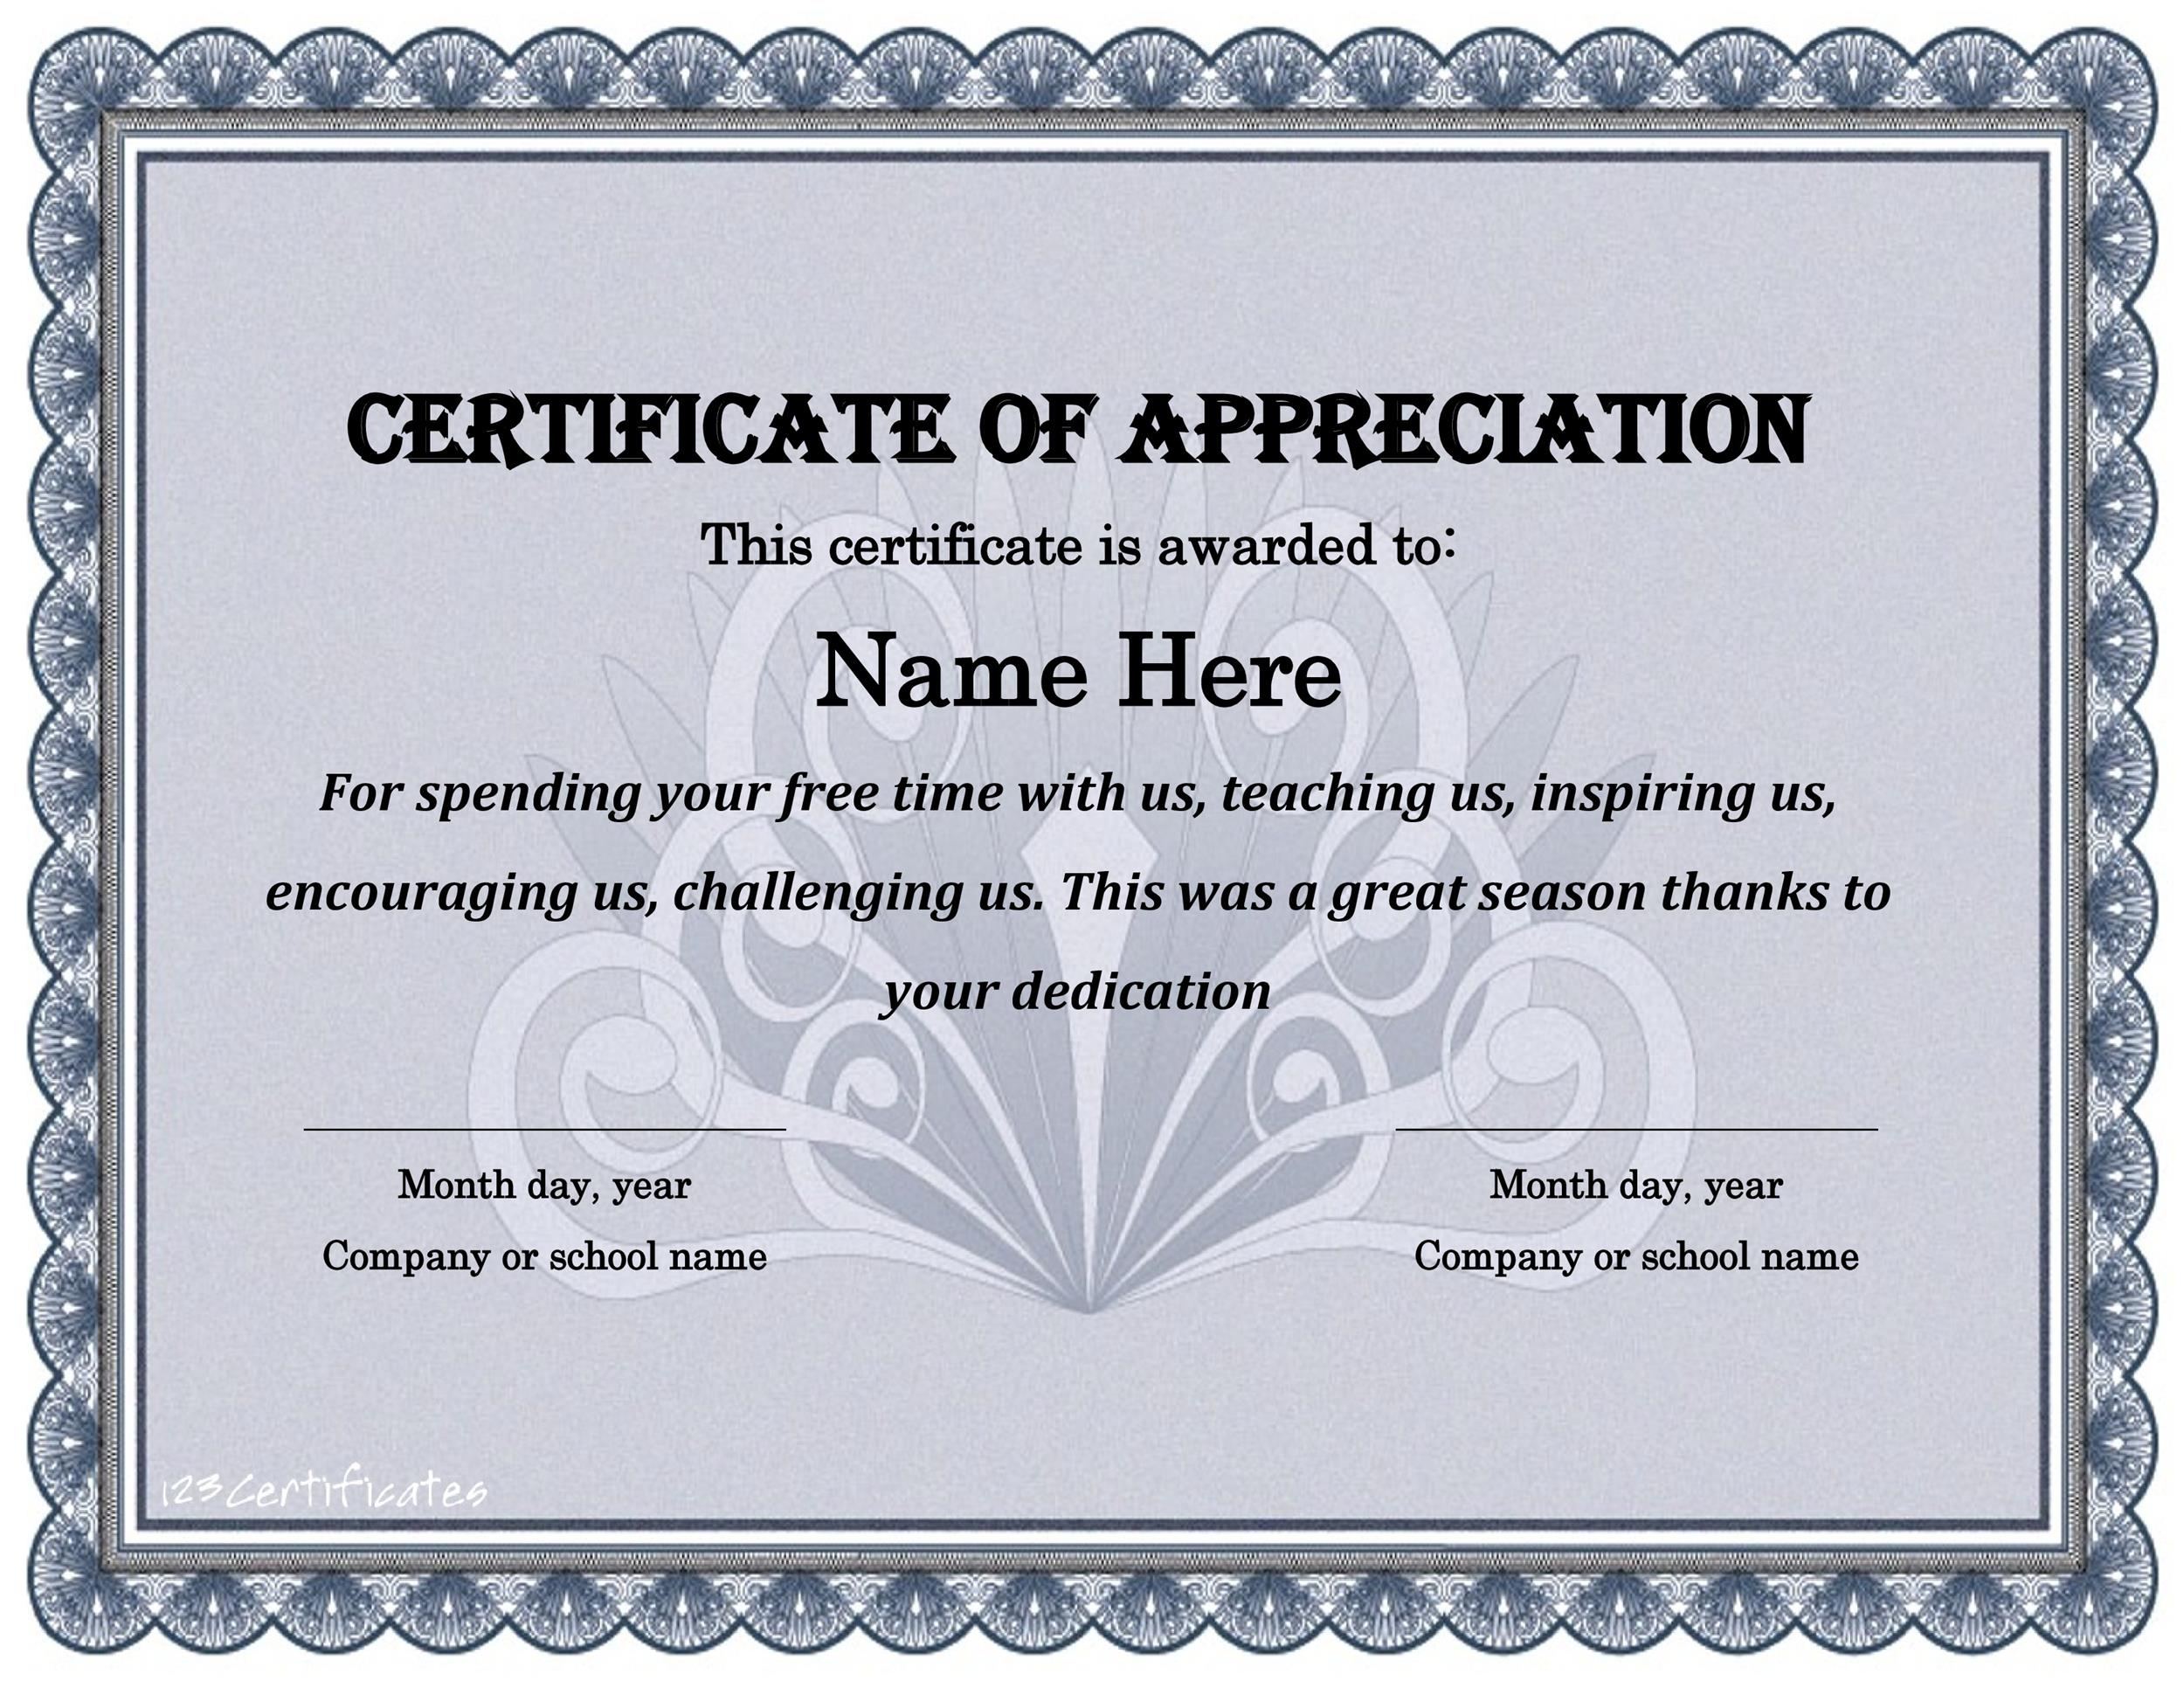 30 free certificate of appreciation templates and letters printable certificate of appreciation 21 yadclub Image collections